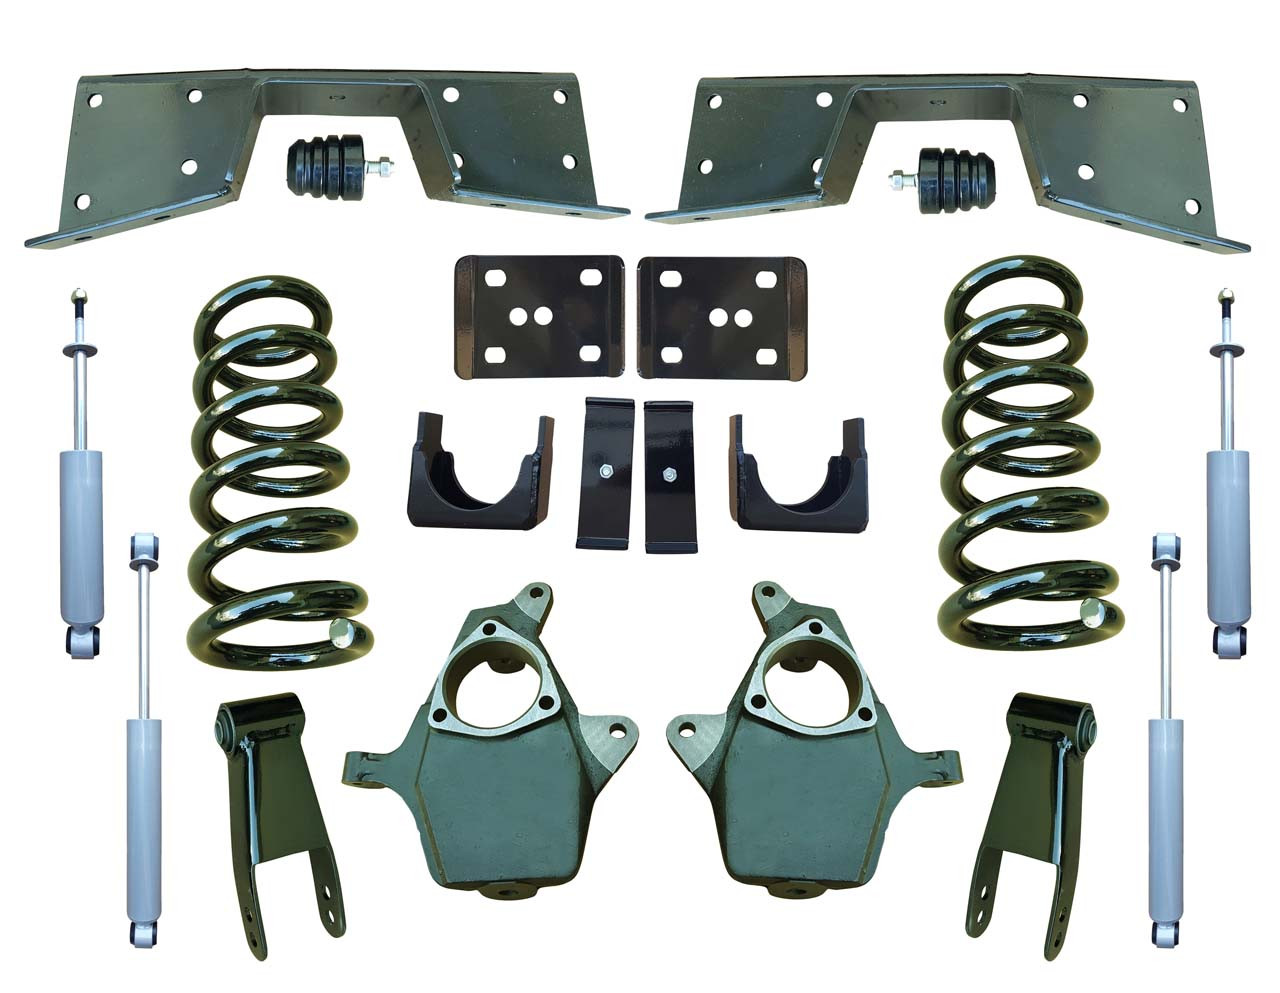 Complete 4/7 Lowering Kit for 99-00 Chevrolet Silverado